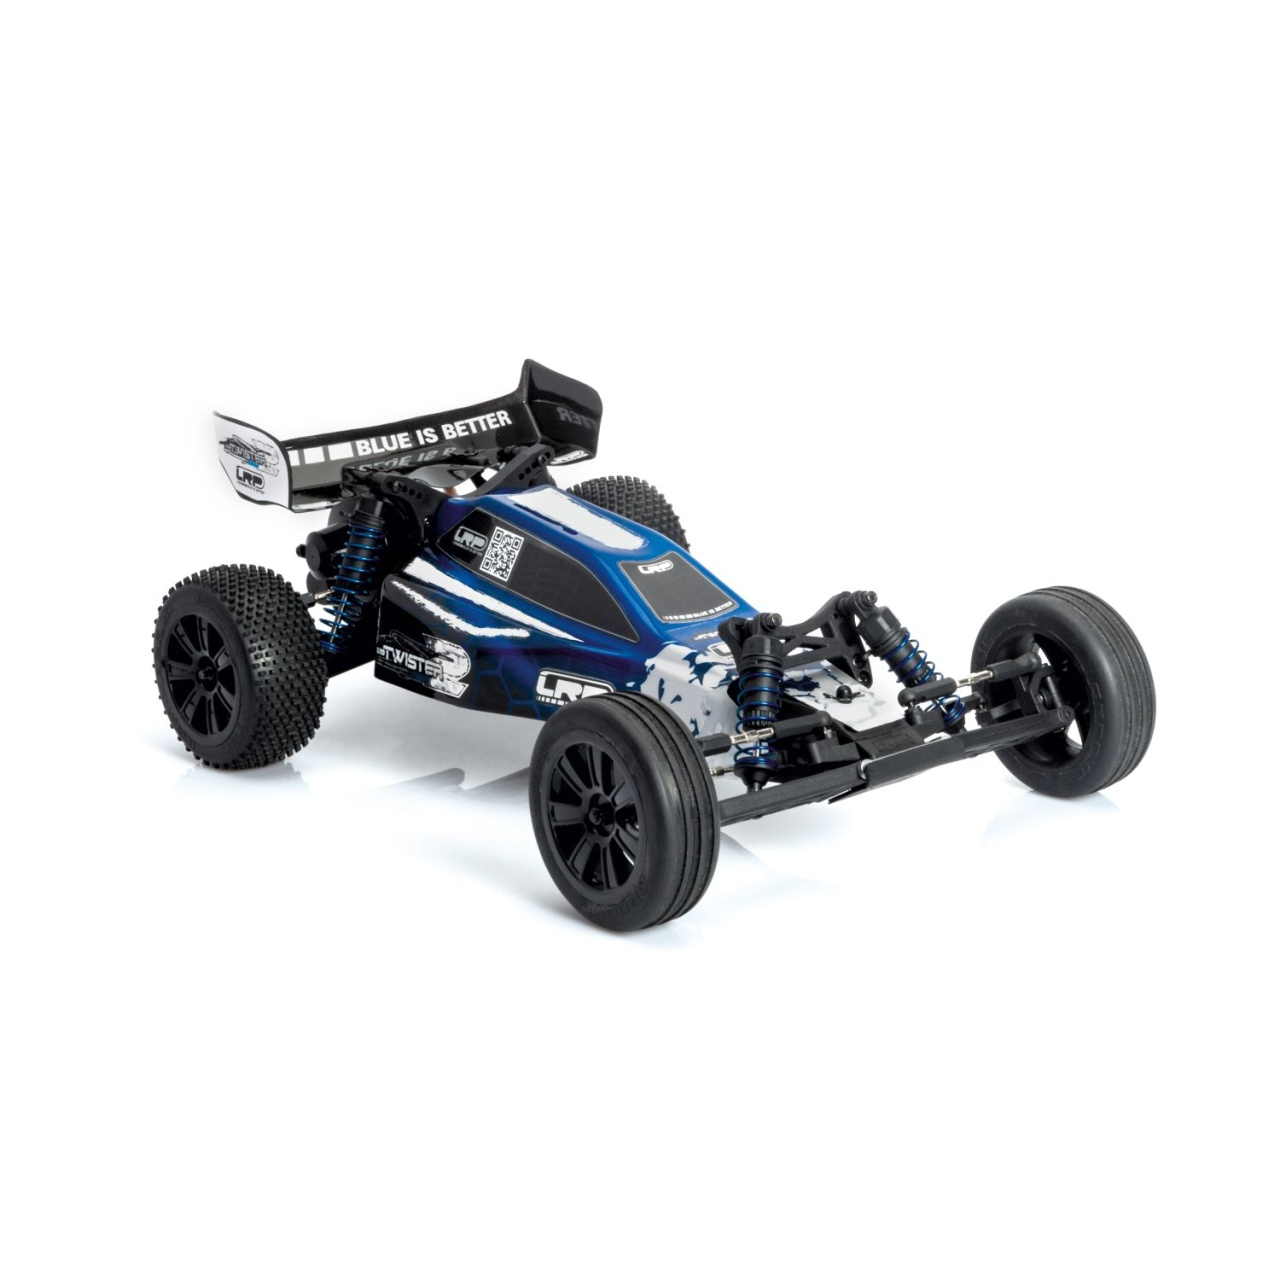 LRP S10 Twister 2 Buggy Brushless